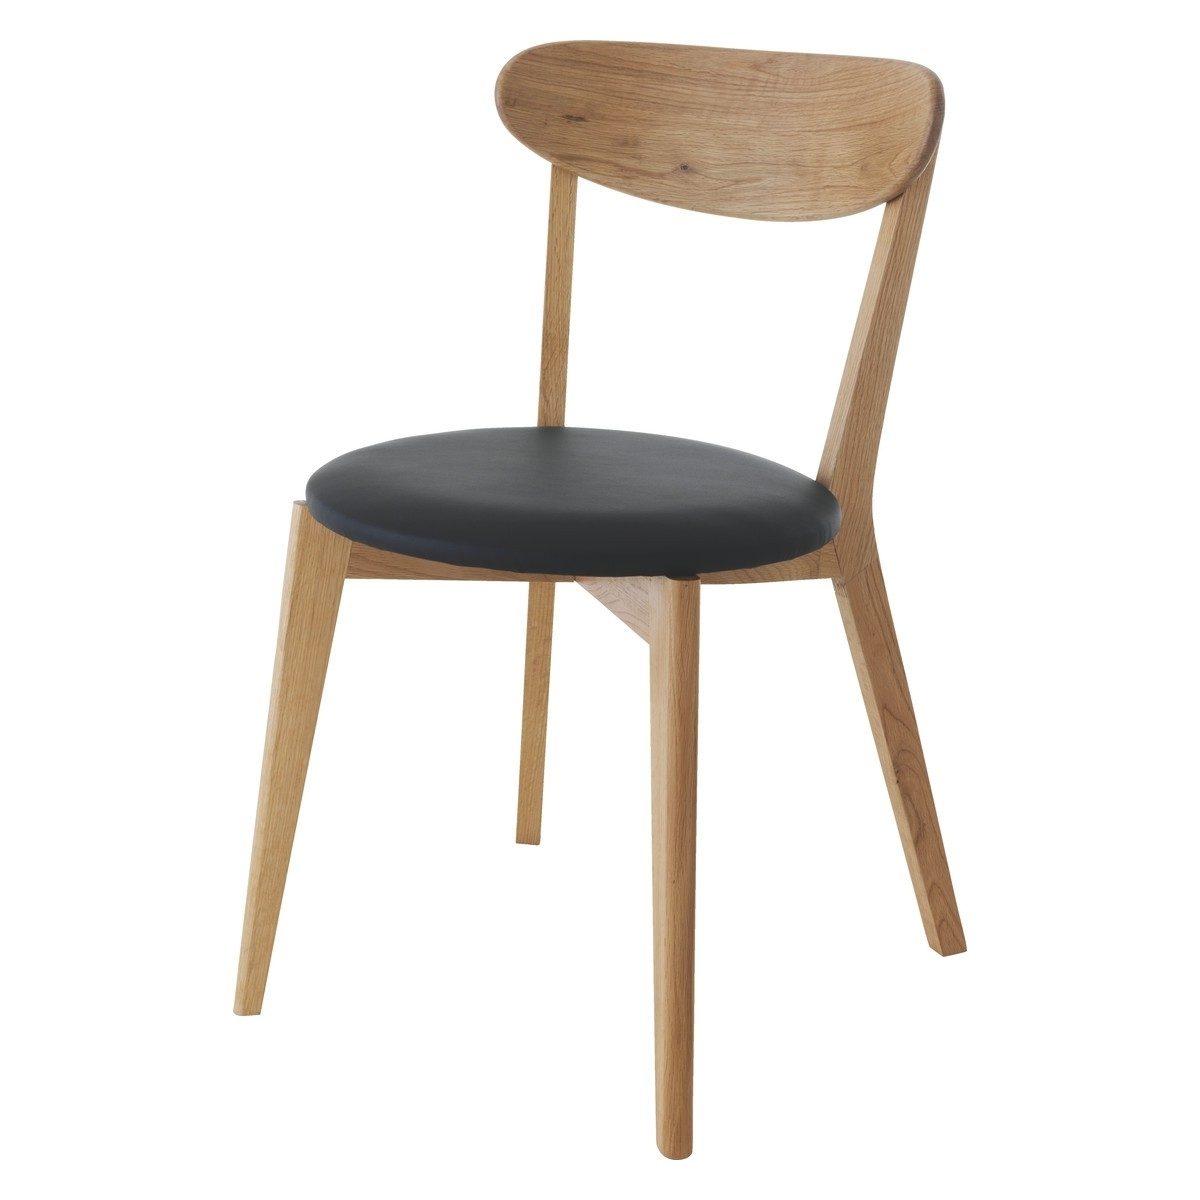 Buy Now At Habitat Uk Pertaining To Oak Dining Chairs (View 7 of 25)